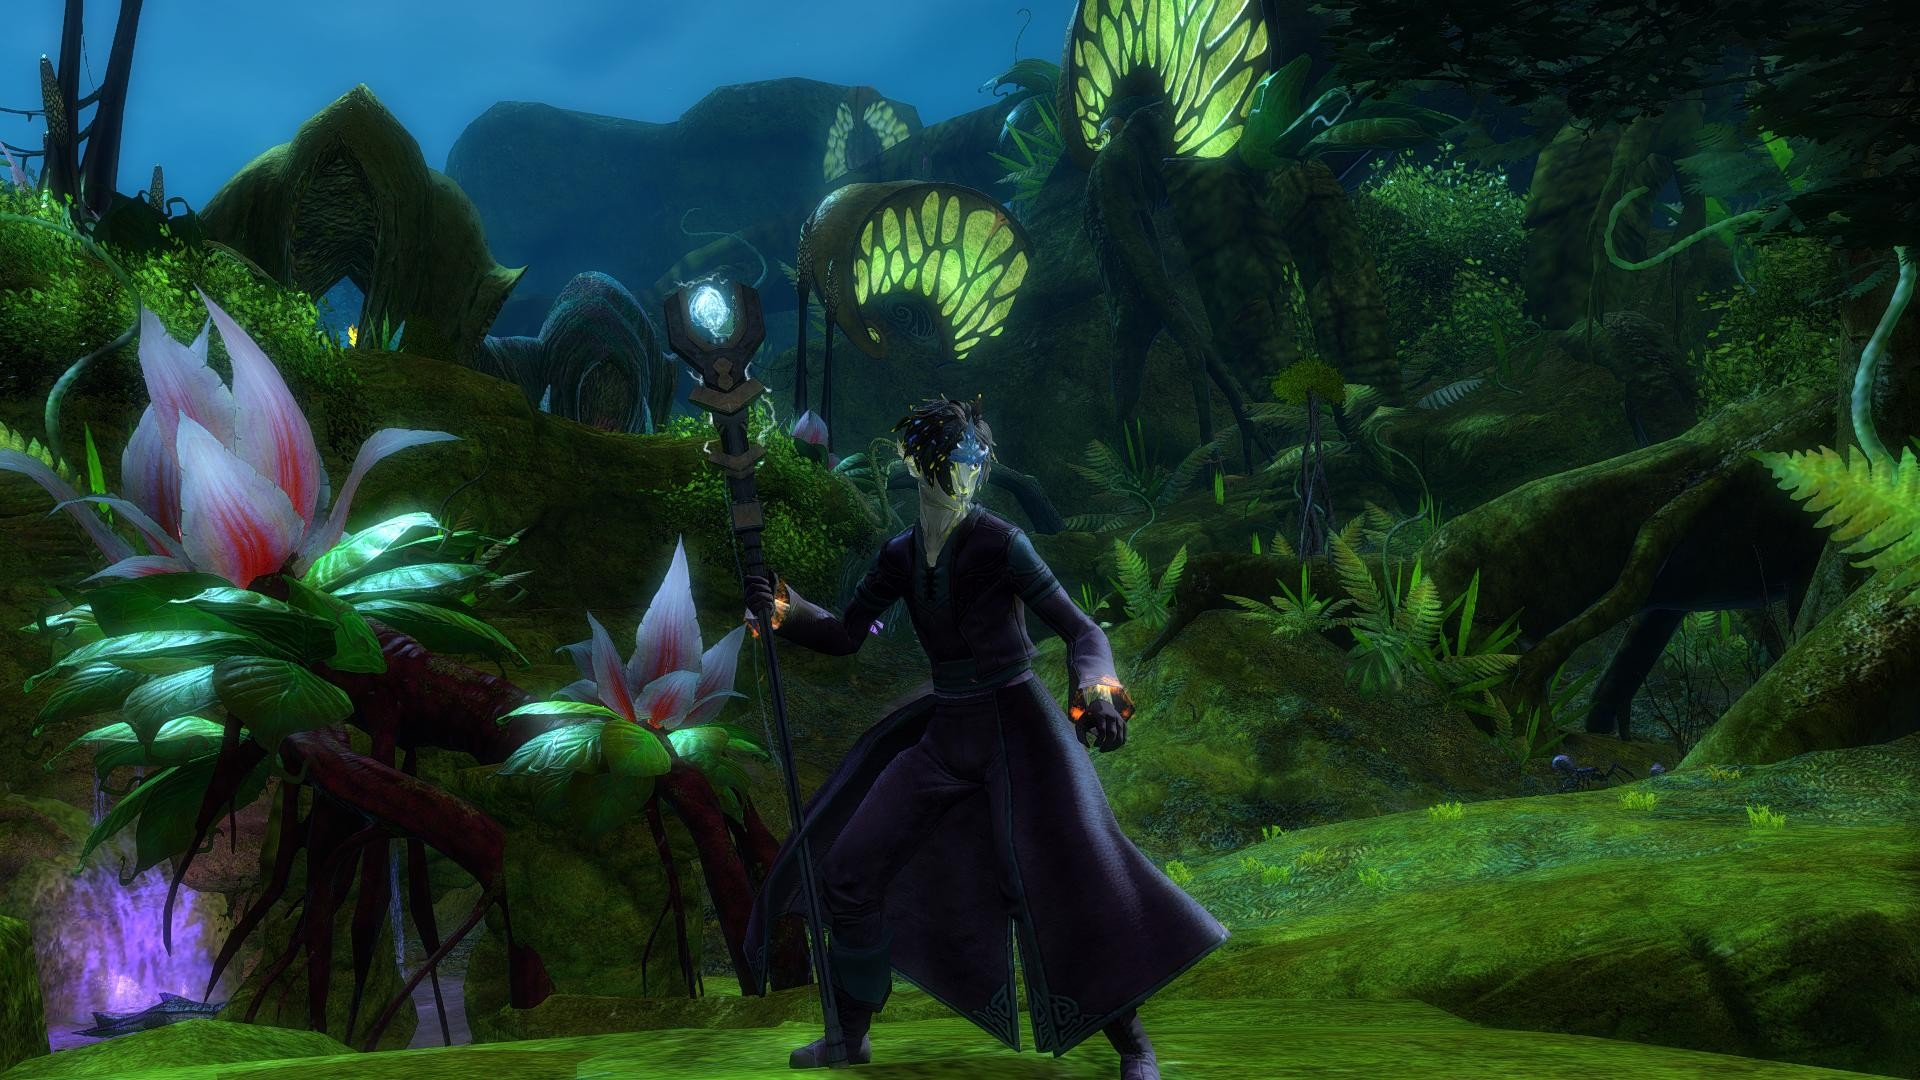 GW2-Using Steet FX mod on this pic!